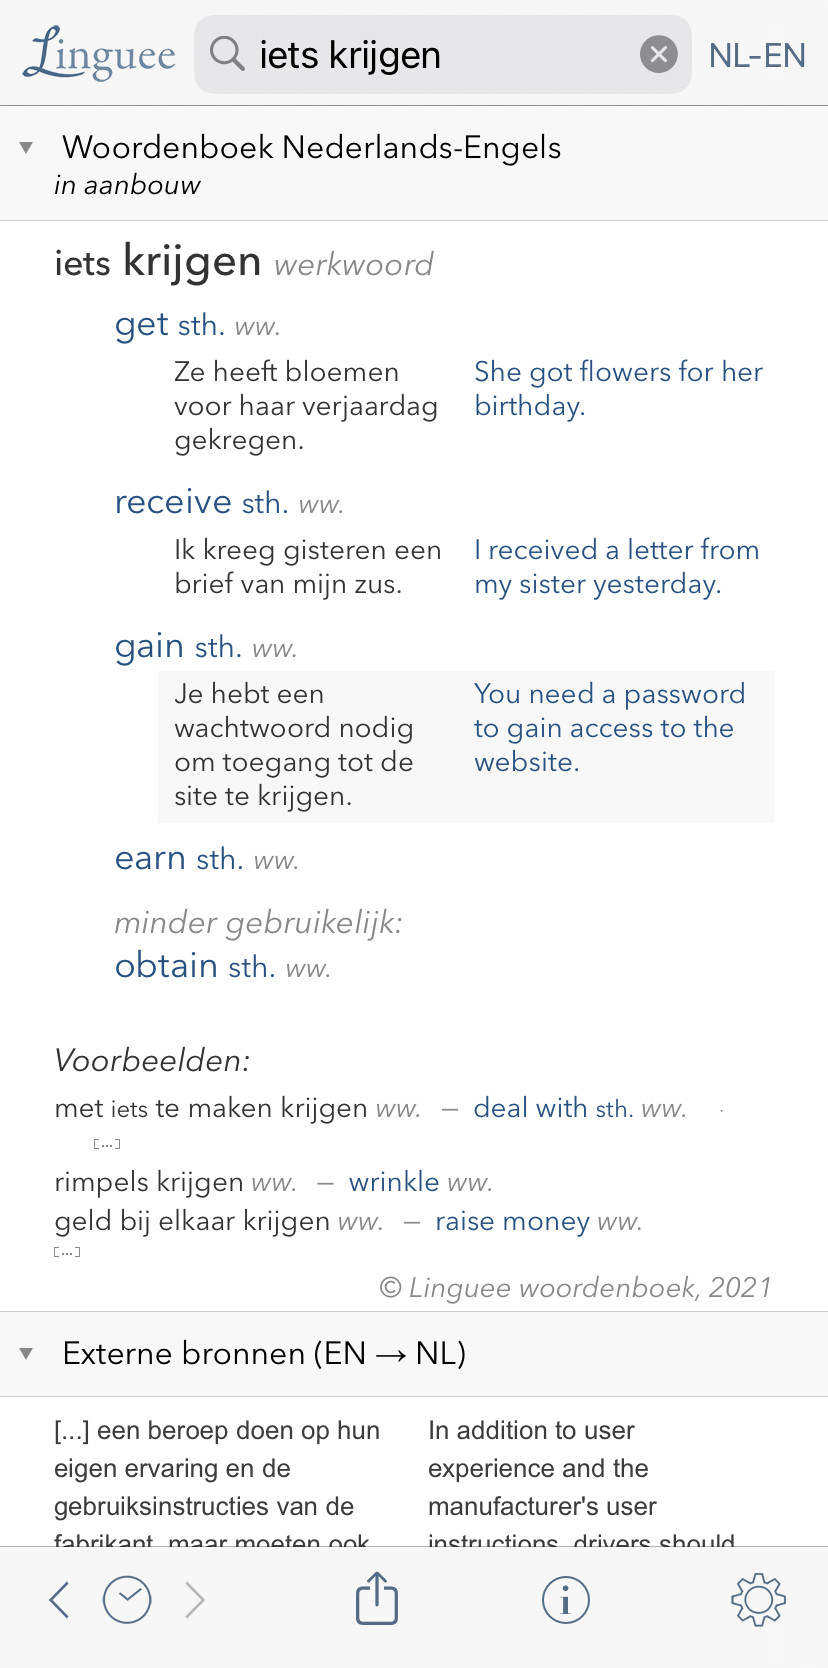 Linguee example